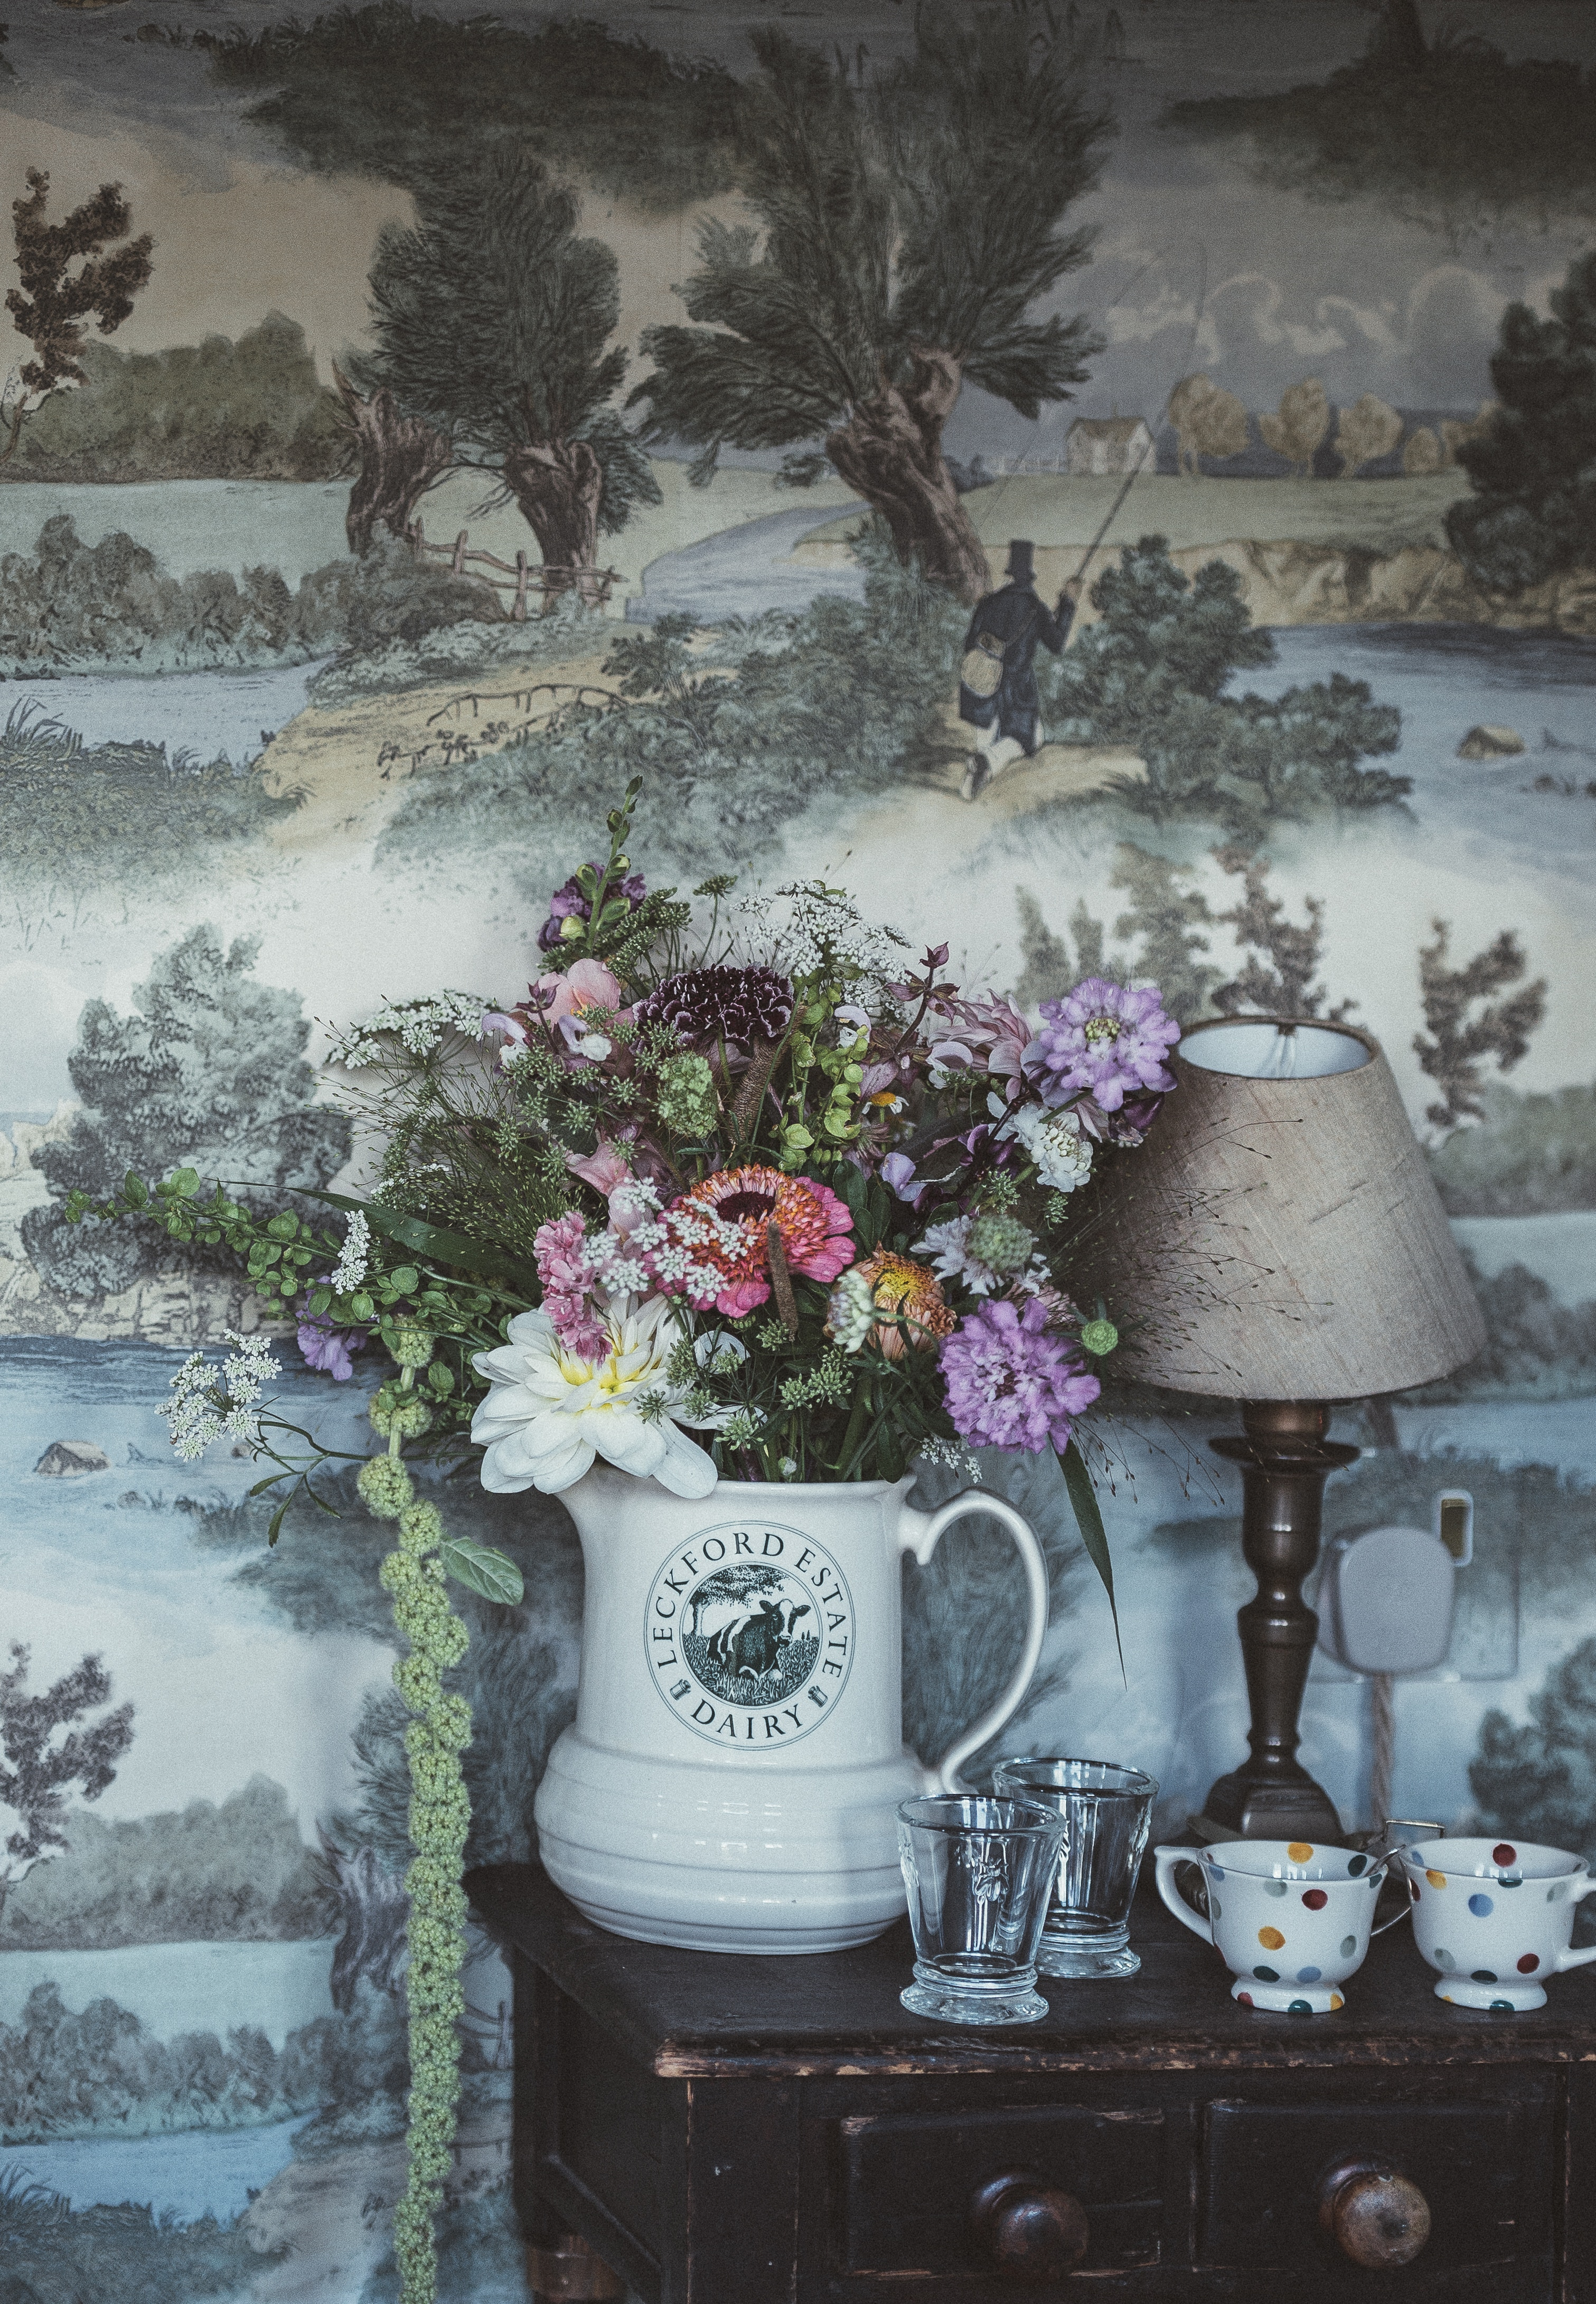 82545 download wallpaper Flowers, Cups, Bouquet, Wall, Lamp screensavers and pictures for free